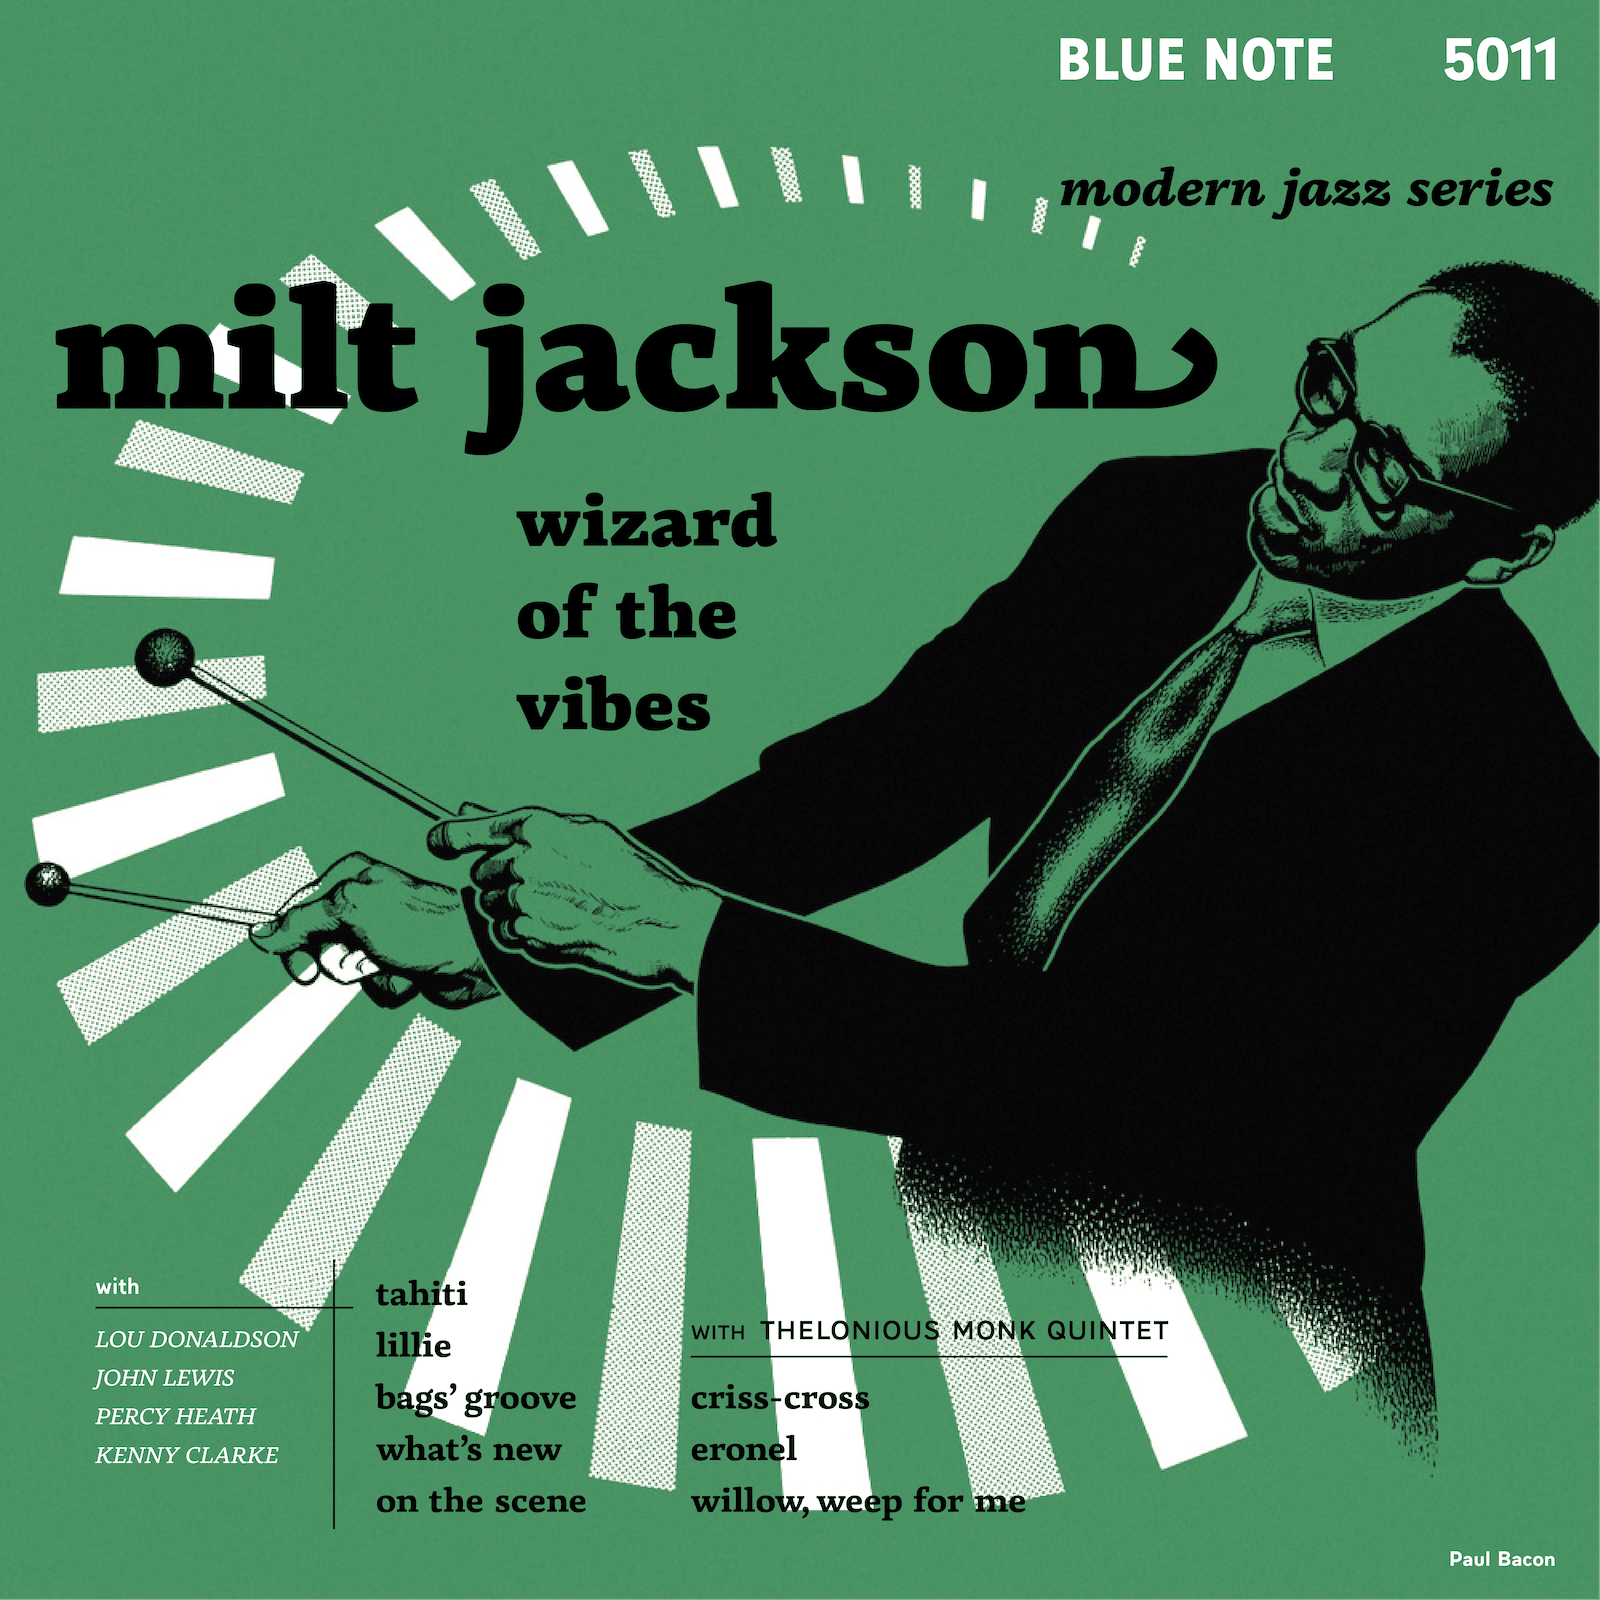 FontsinUse: Milt Jackson Blue Note album cover set in Basco